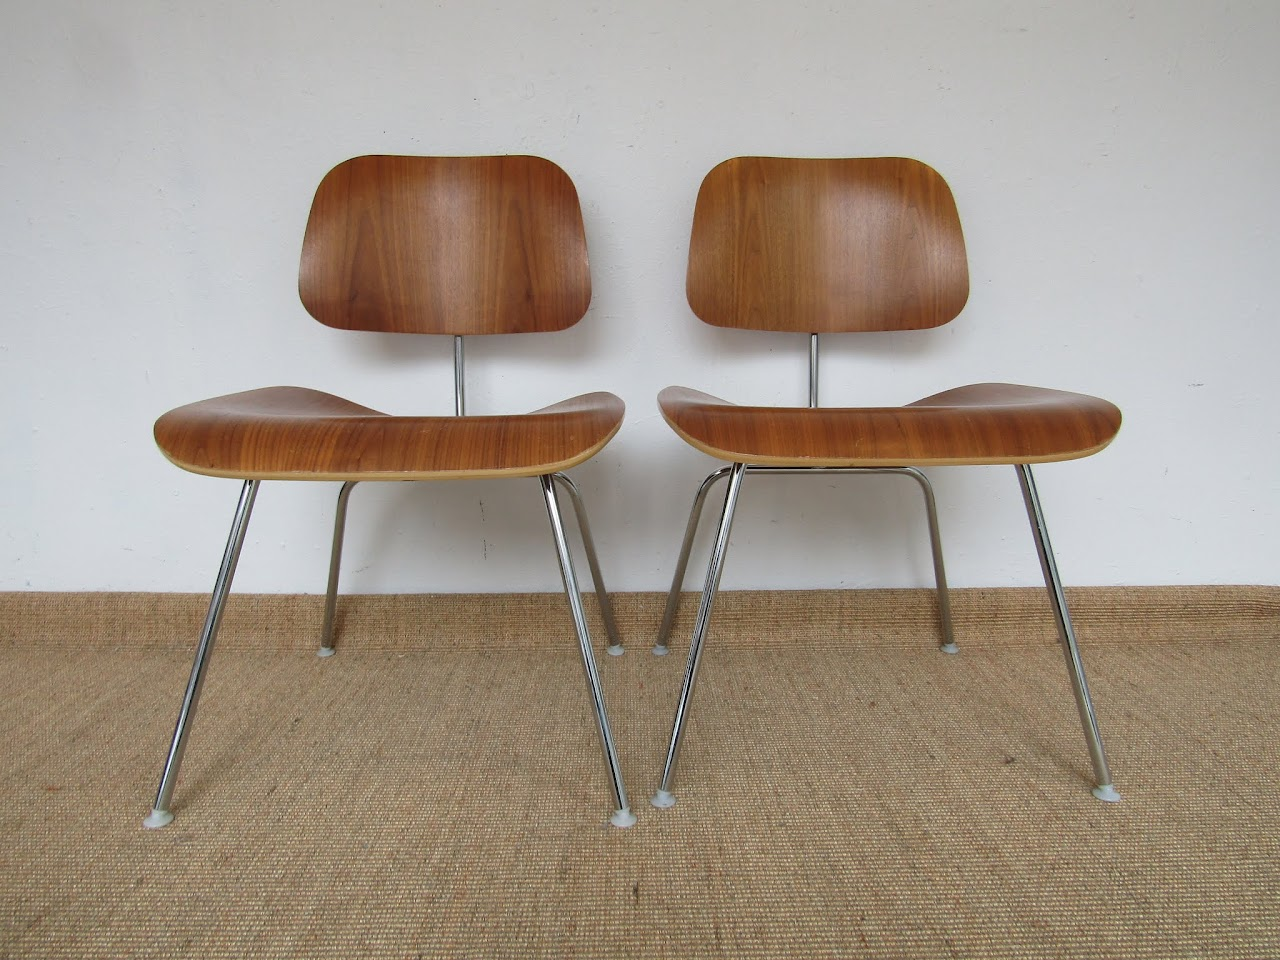 Eames Molded Plywood Chair Pair (6)